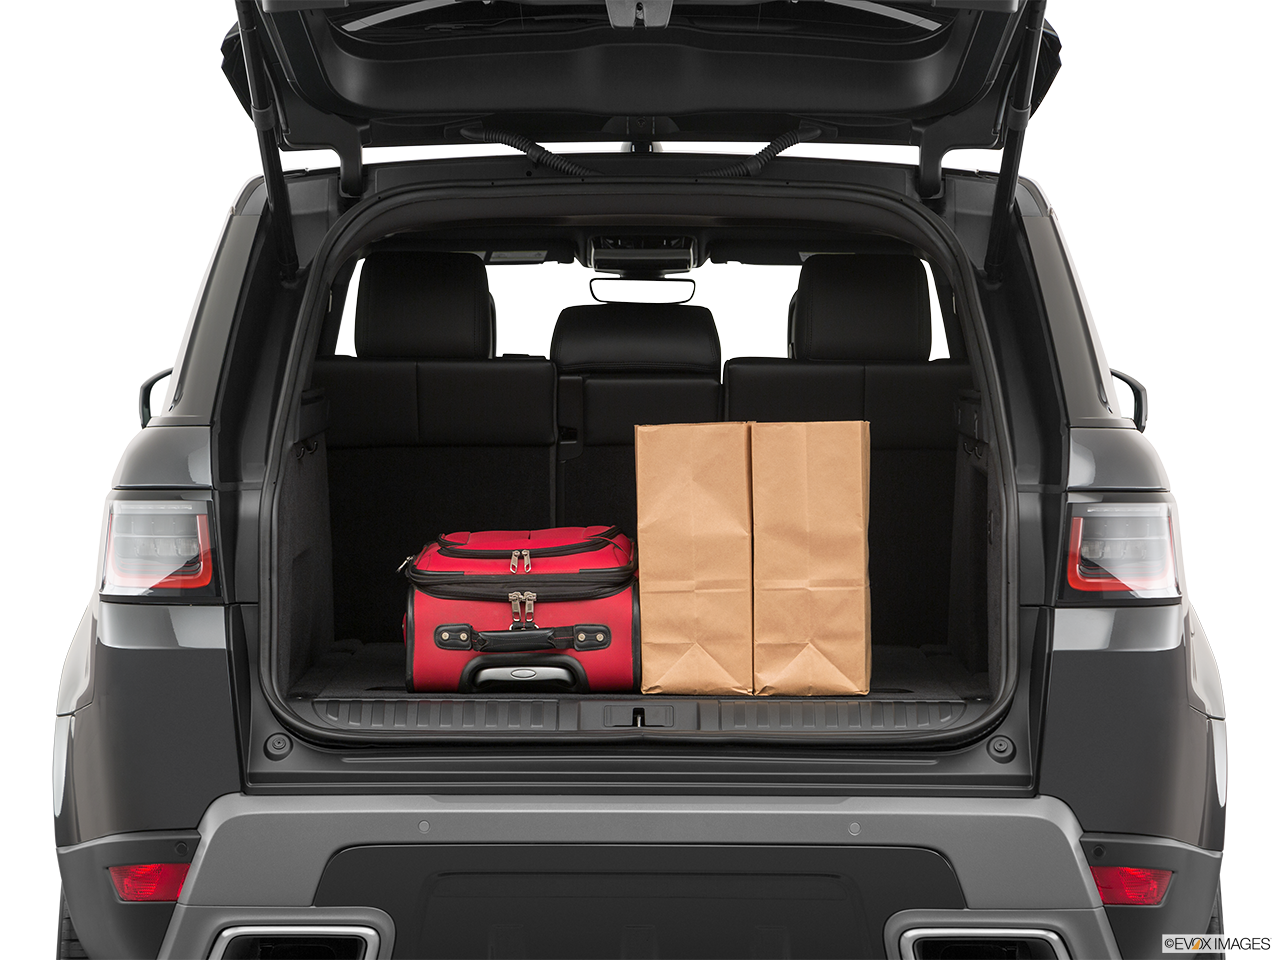 Trunk view of the Land Rover Range Rover PHEV